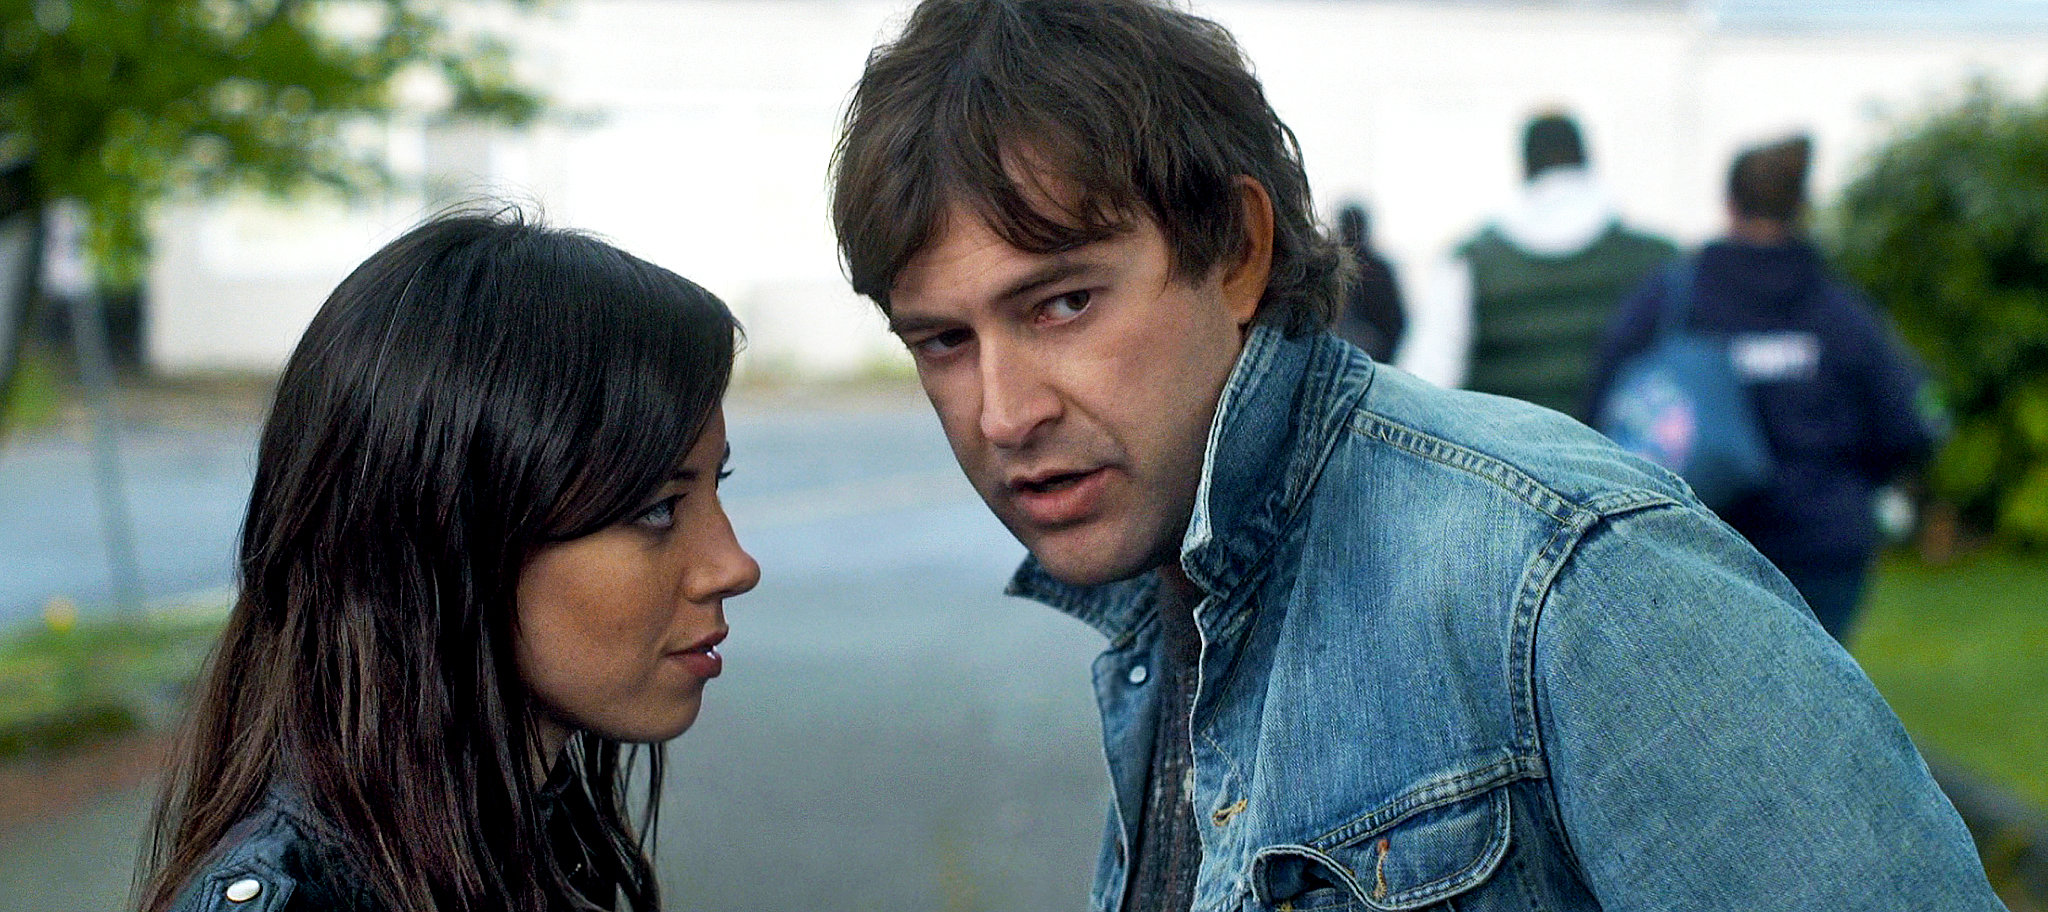 Aubrey Plaza and Mark Duplass in Safety Not Guaranteed (2012)